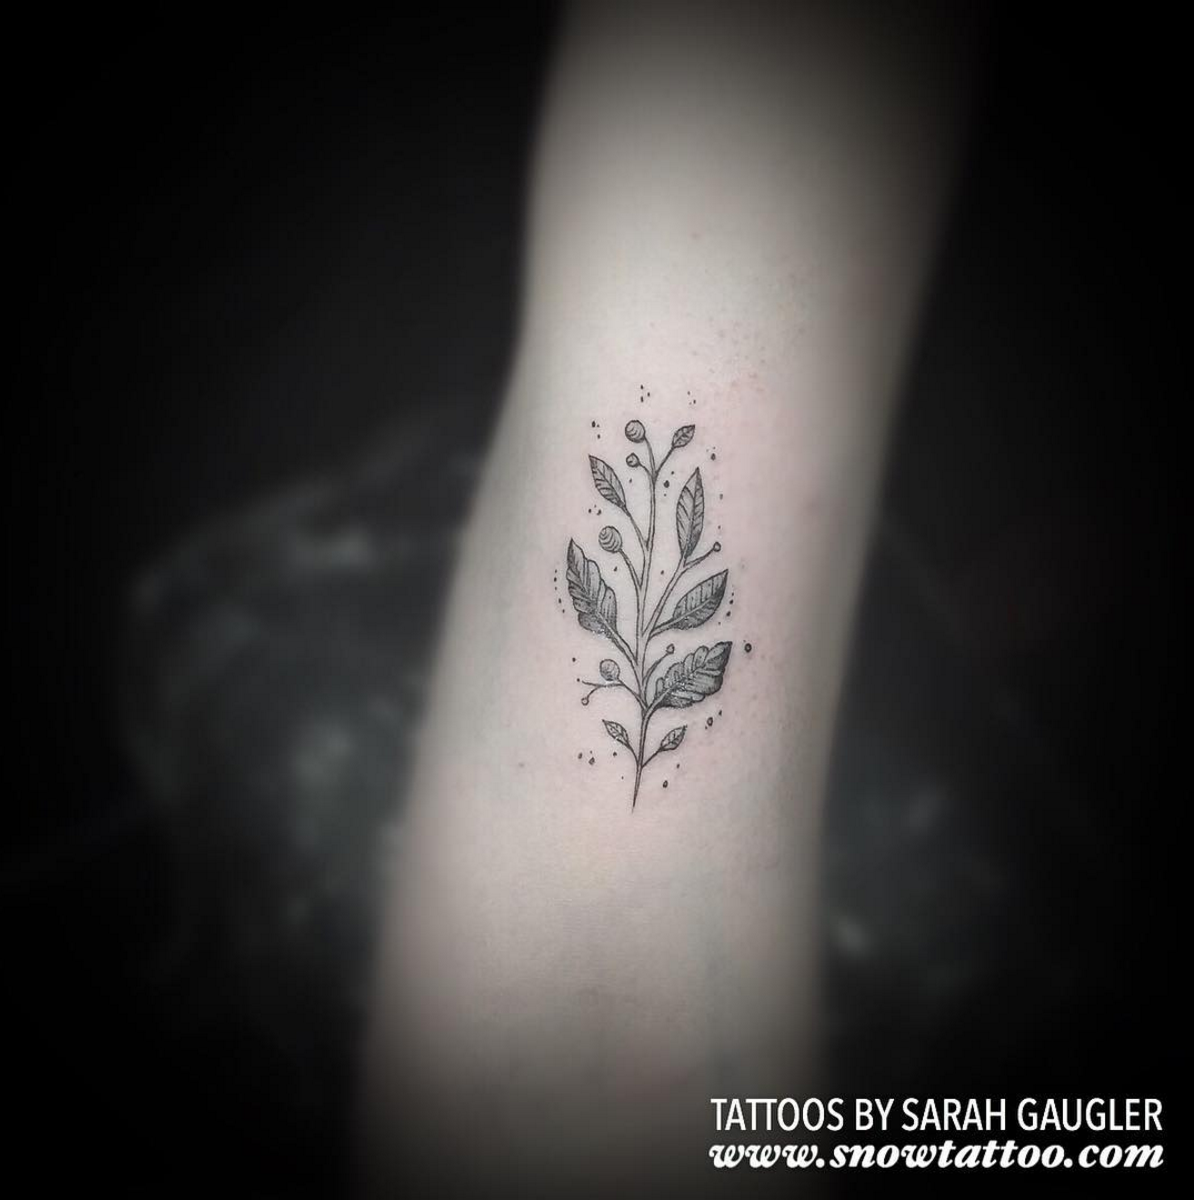 Sarah Gaugler Snow Tattoo Custom Floral Blue Berries Detailed Tattoo New York Best Tattoos Best Tattoo Artist NYC.png